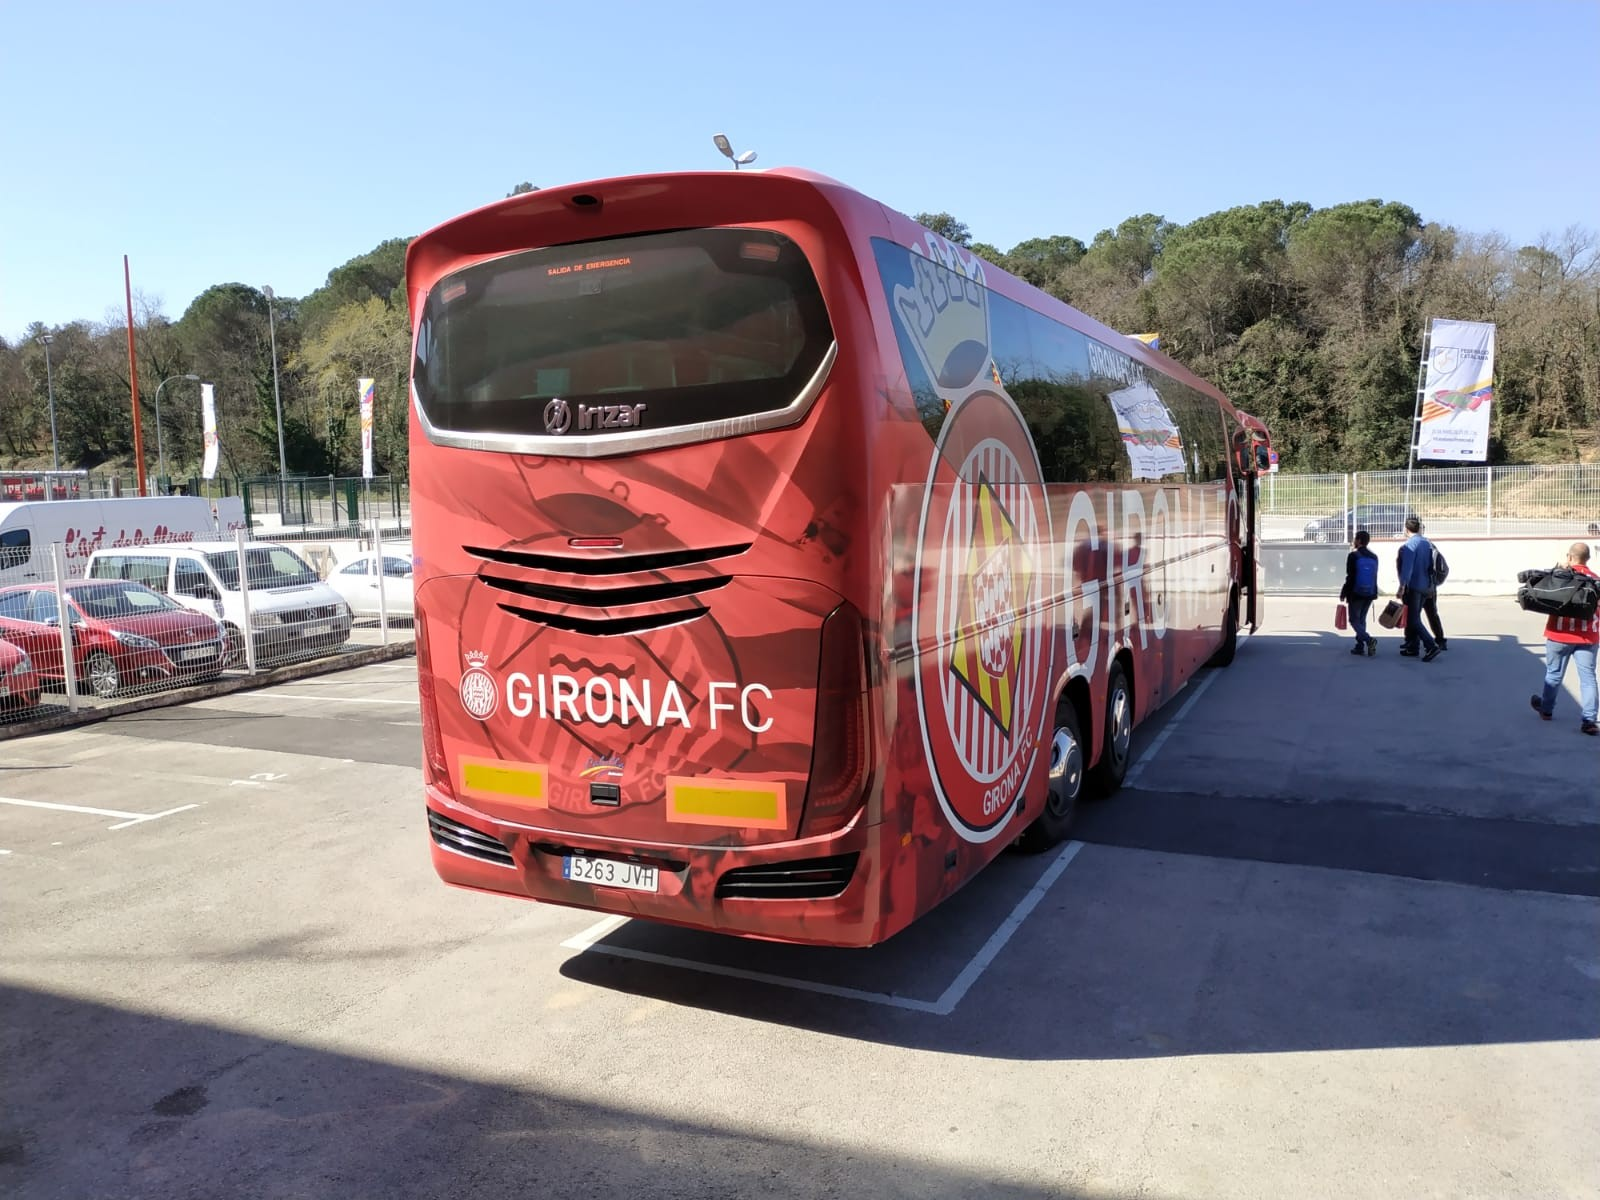 Meet and Greet - Bus oficial